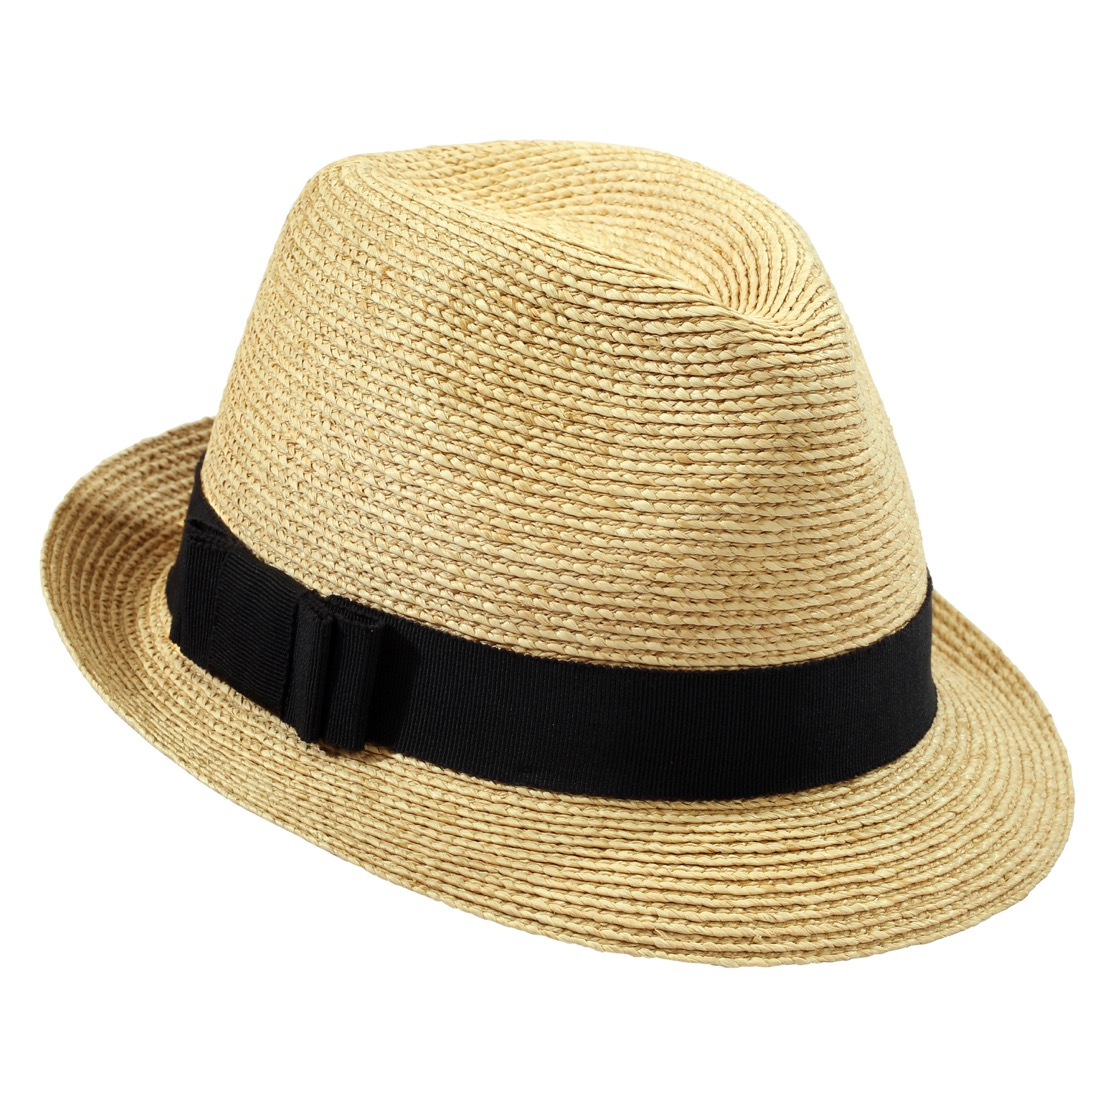 Lou Childrens Fedora